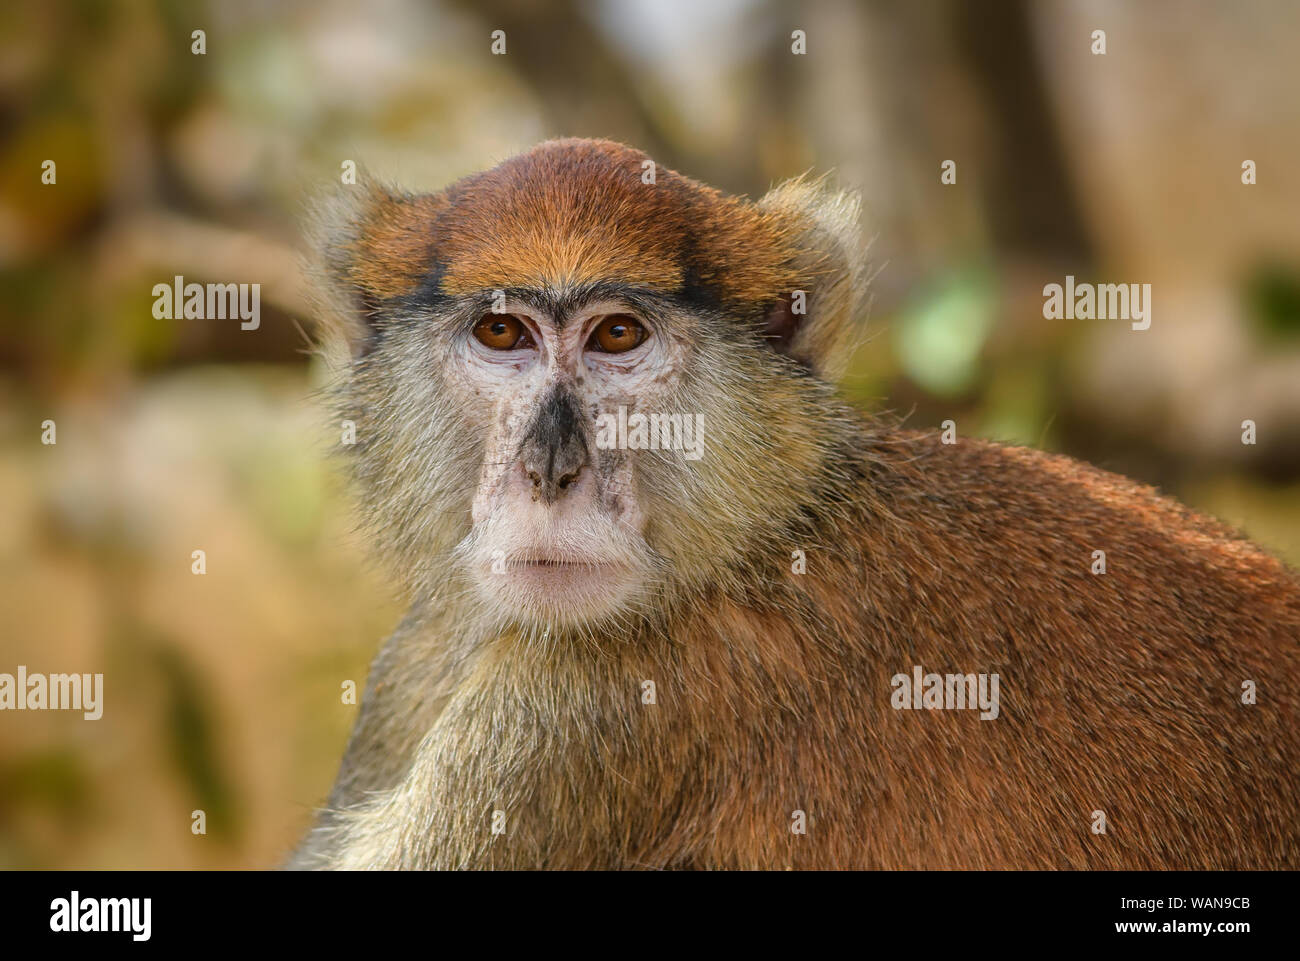 Patas Monkey - Erythrocebus patas, beautiful orange primate from African bushes and forests, Senegal, West Africa. Stock Photo